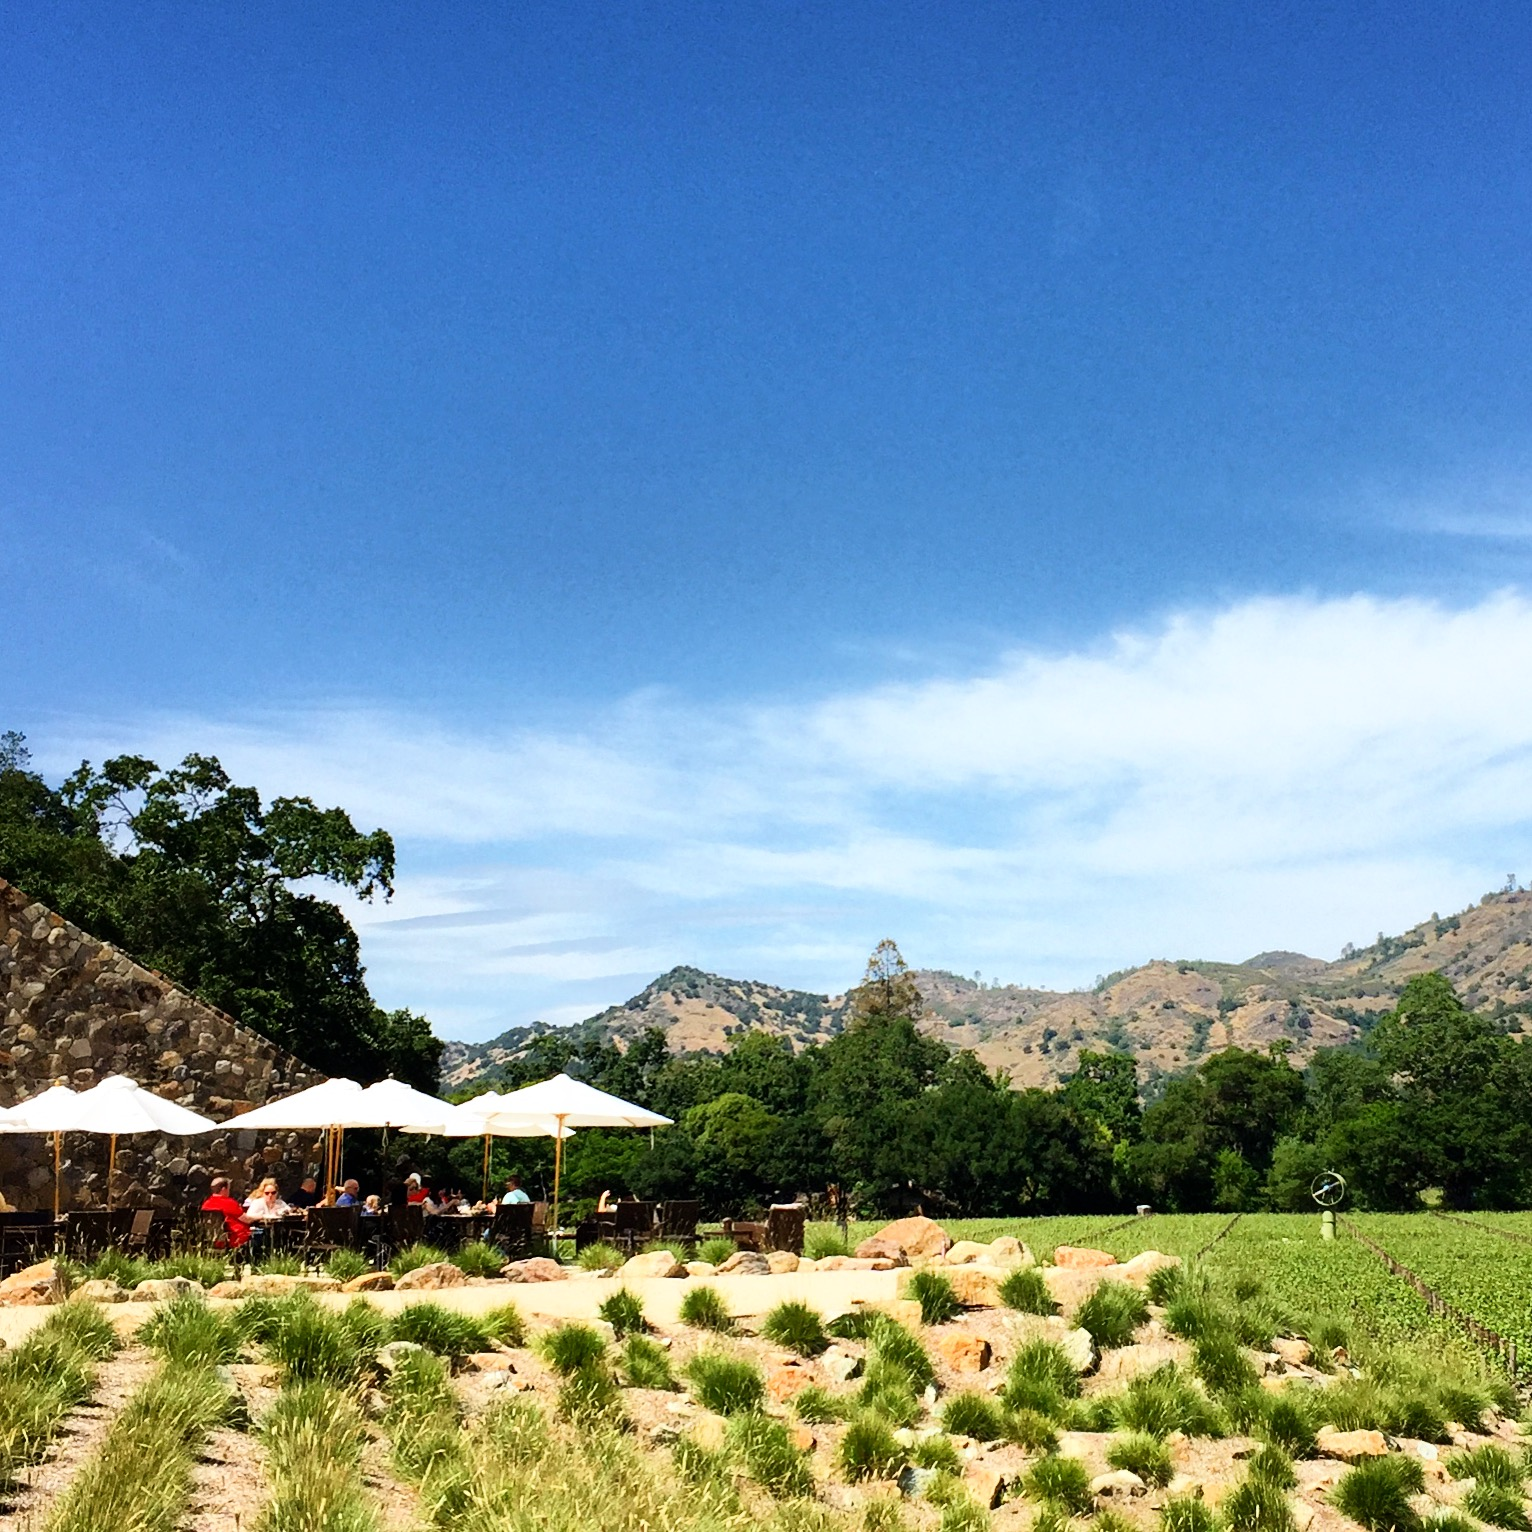 Their outdoor tasting area, overlooking the property.